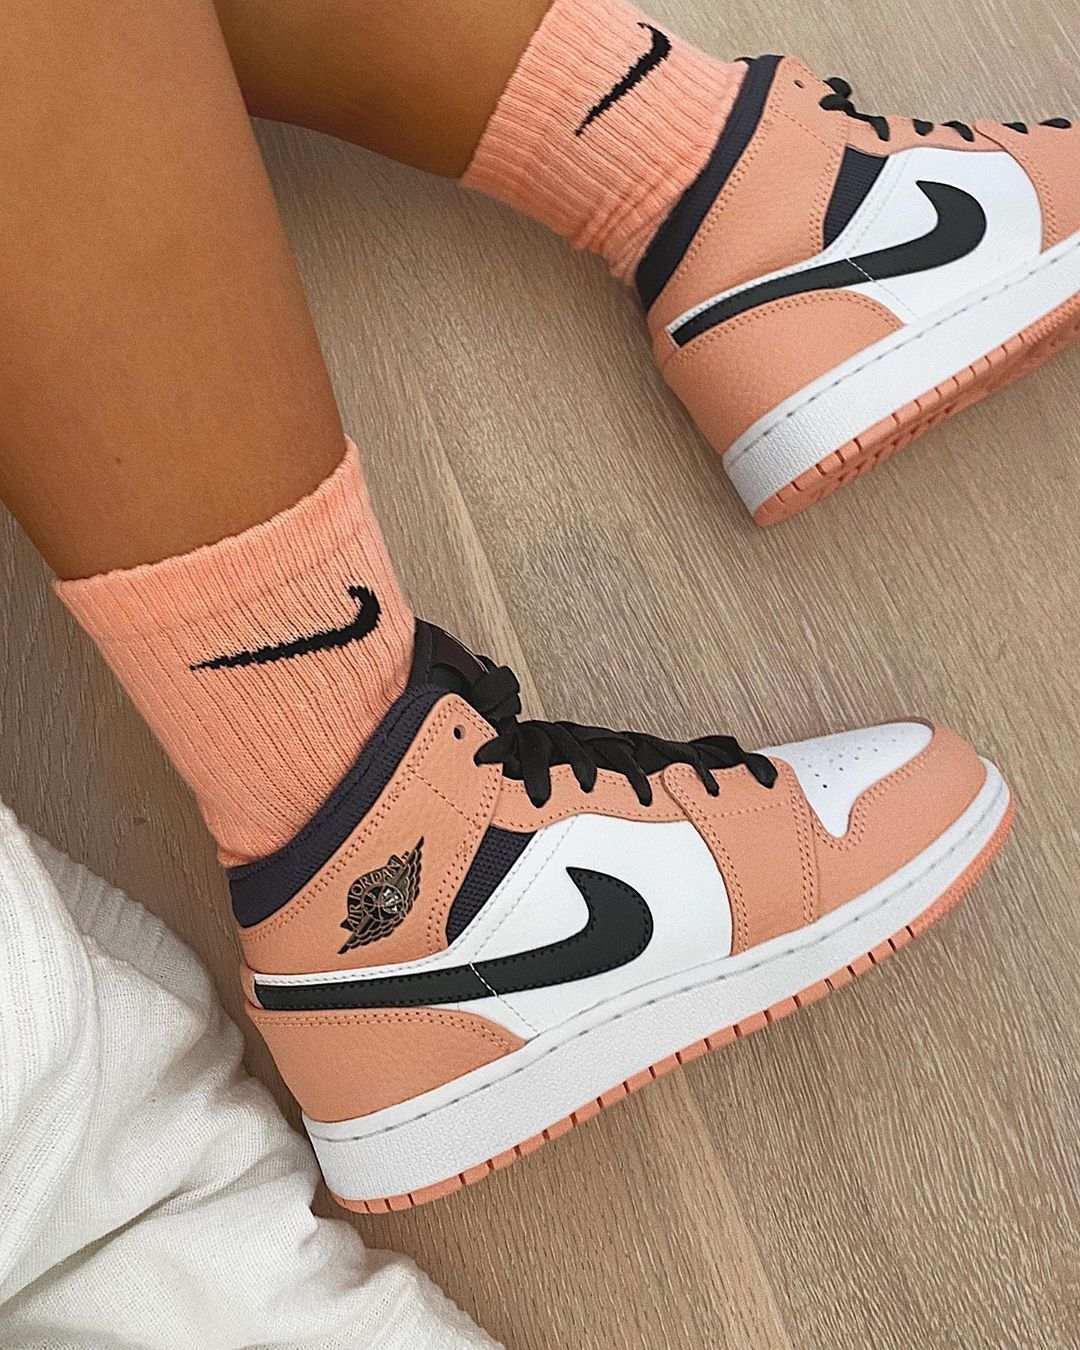 """C A R M S  LONDON on Instagram: """"nikes, peachy 🍑obsessed w these @instakicksz 😍🌻"""""""